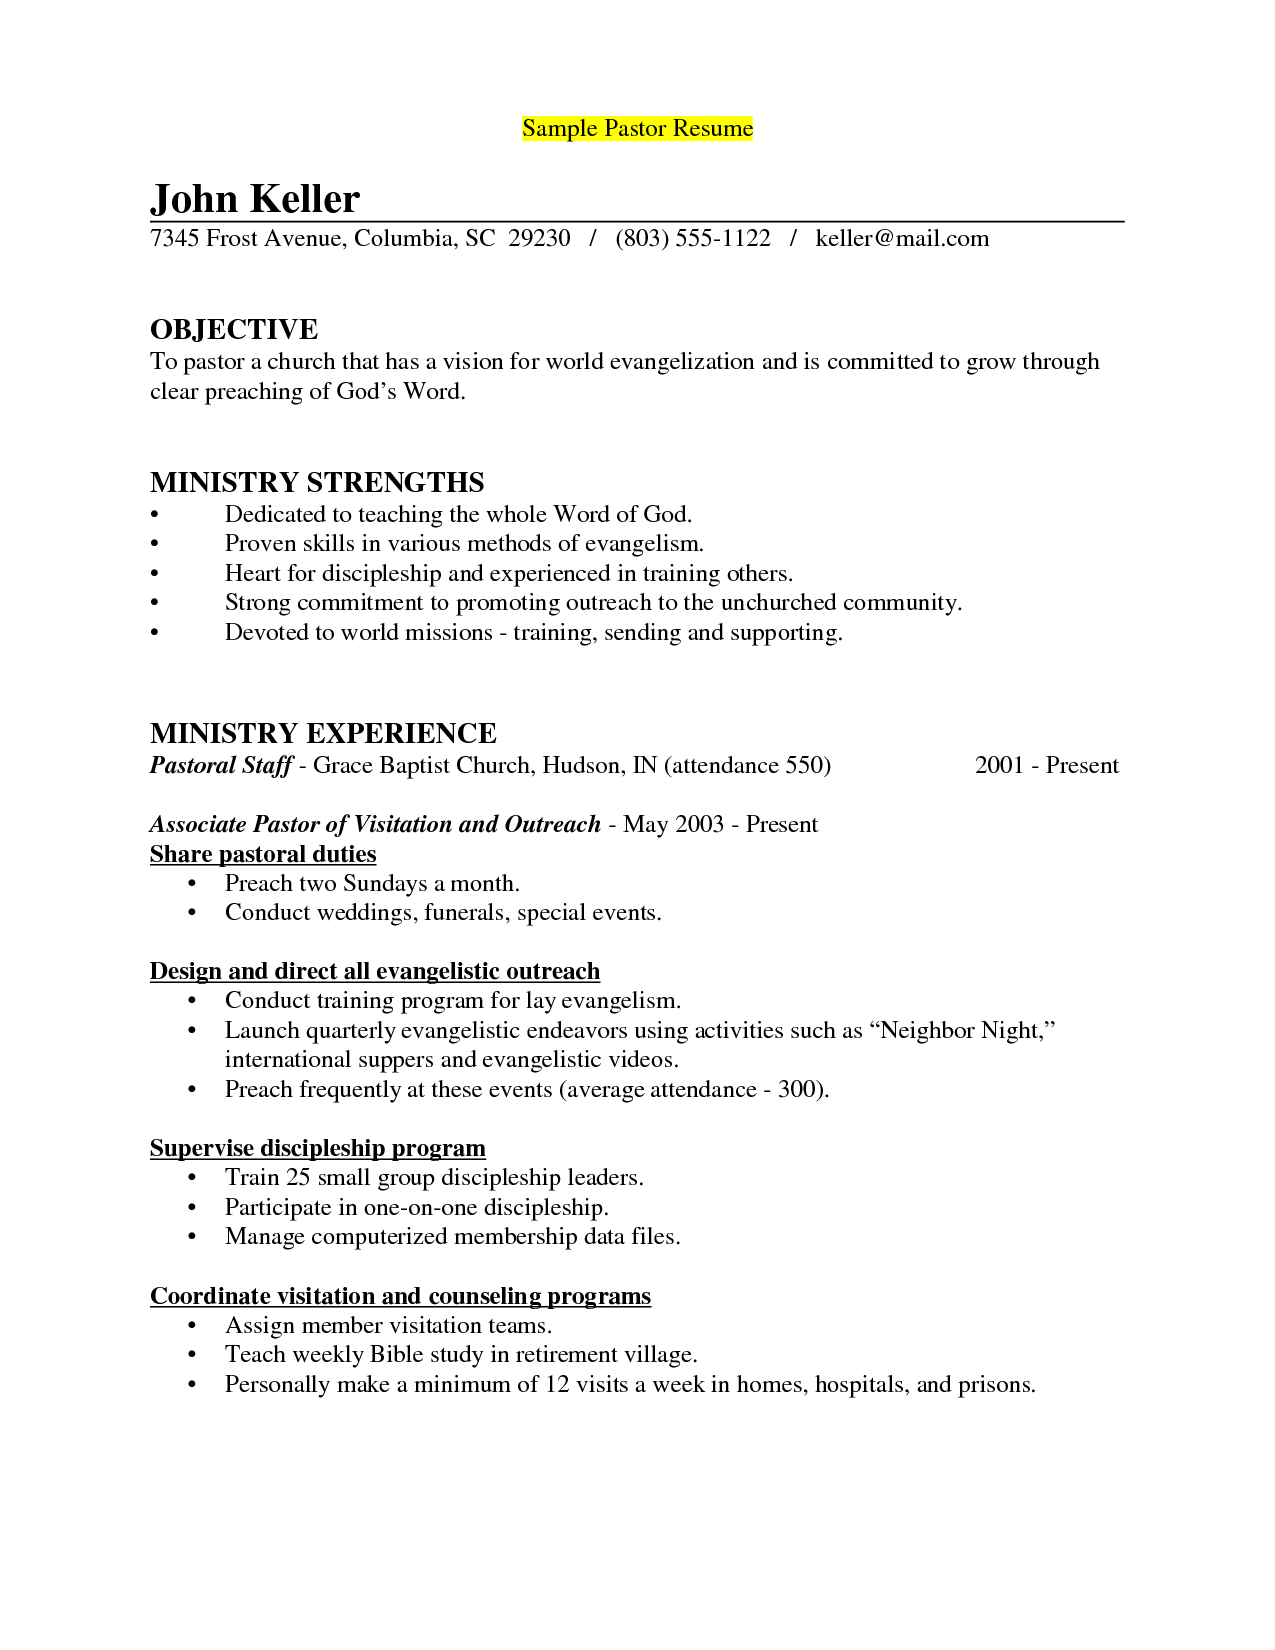 Sample Of A Pastors Resume | Sample Resumes For Senior Pastors  Sample Teen Resume